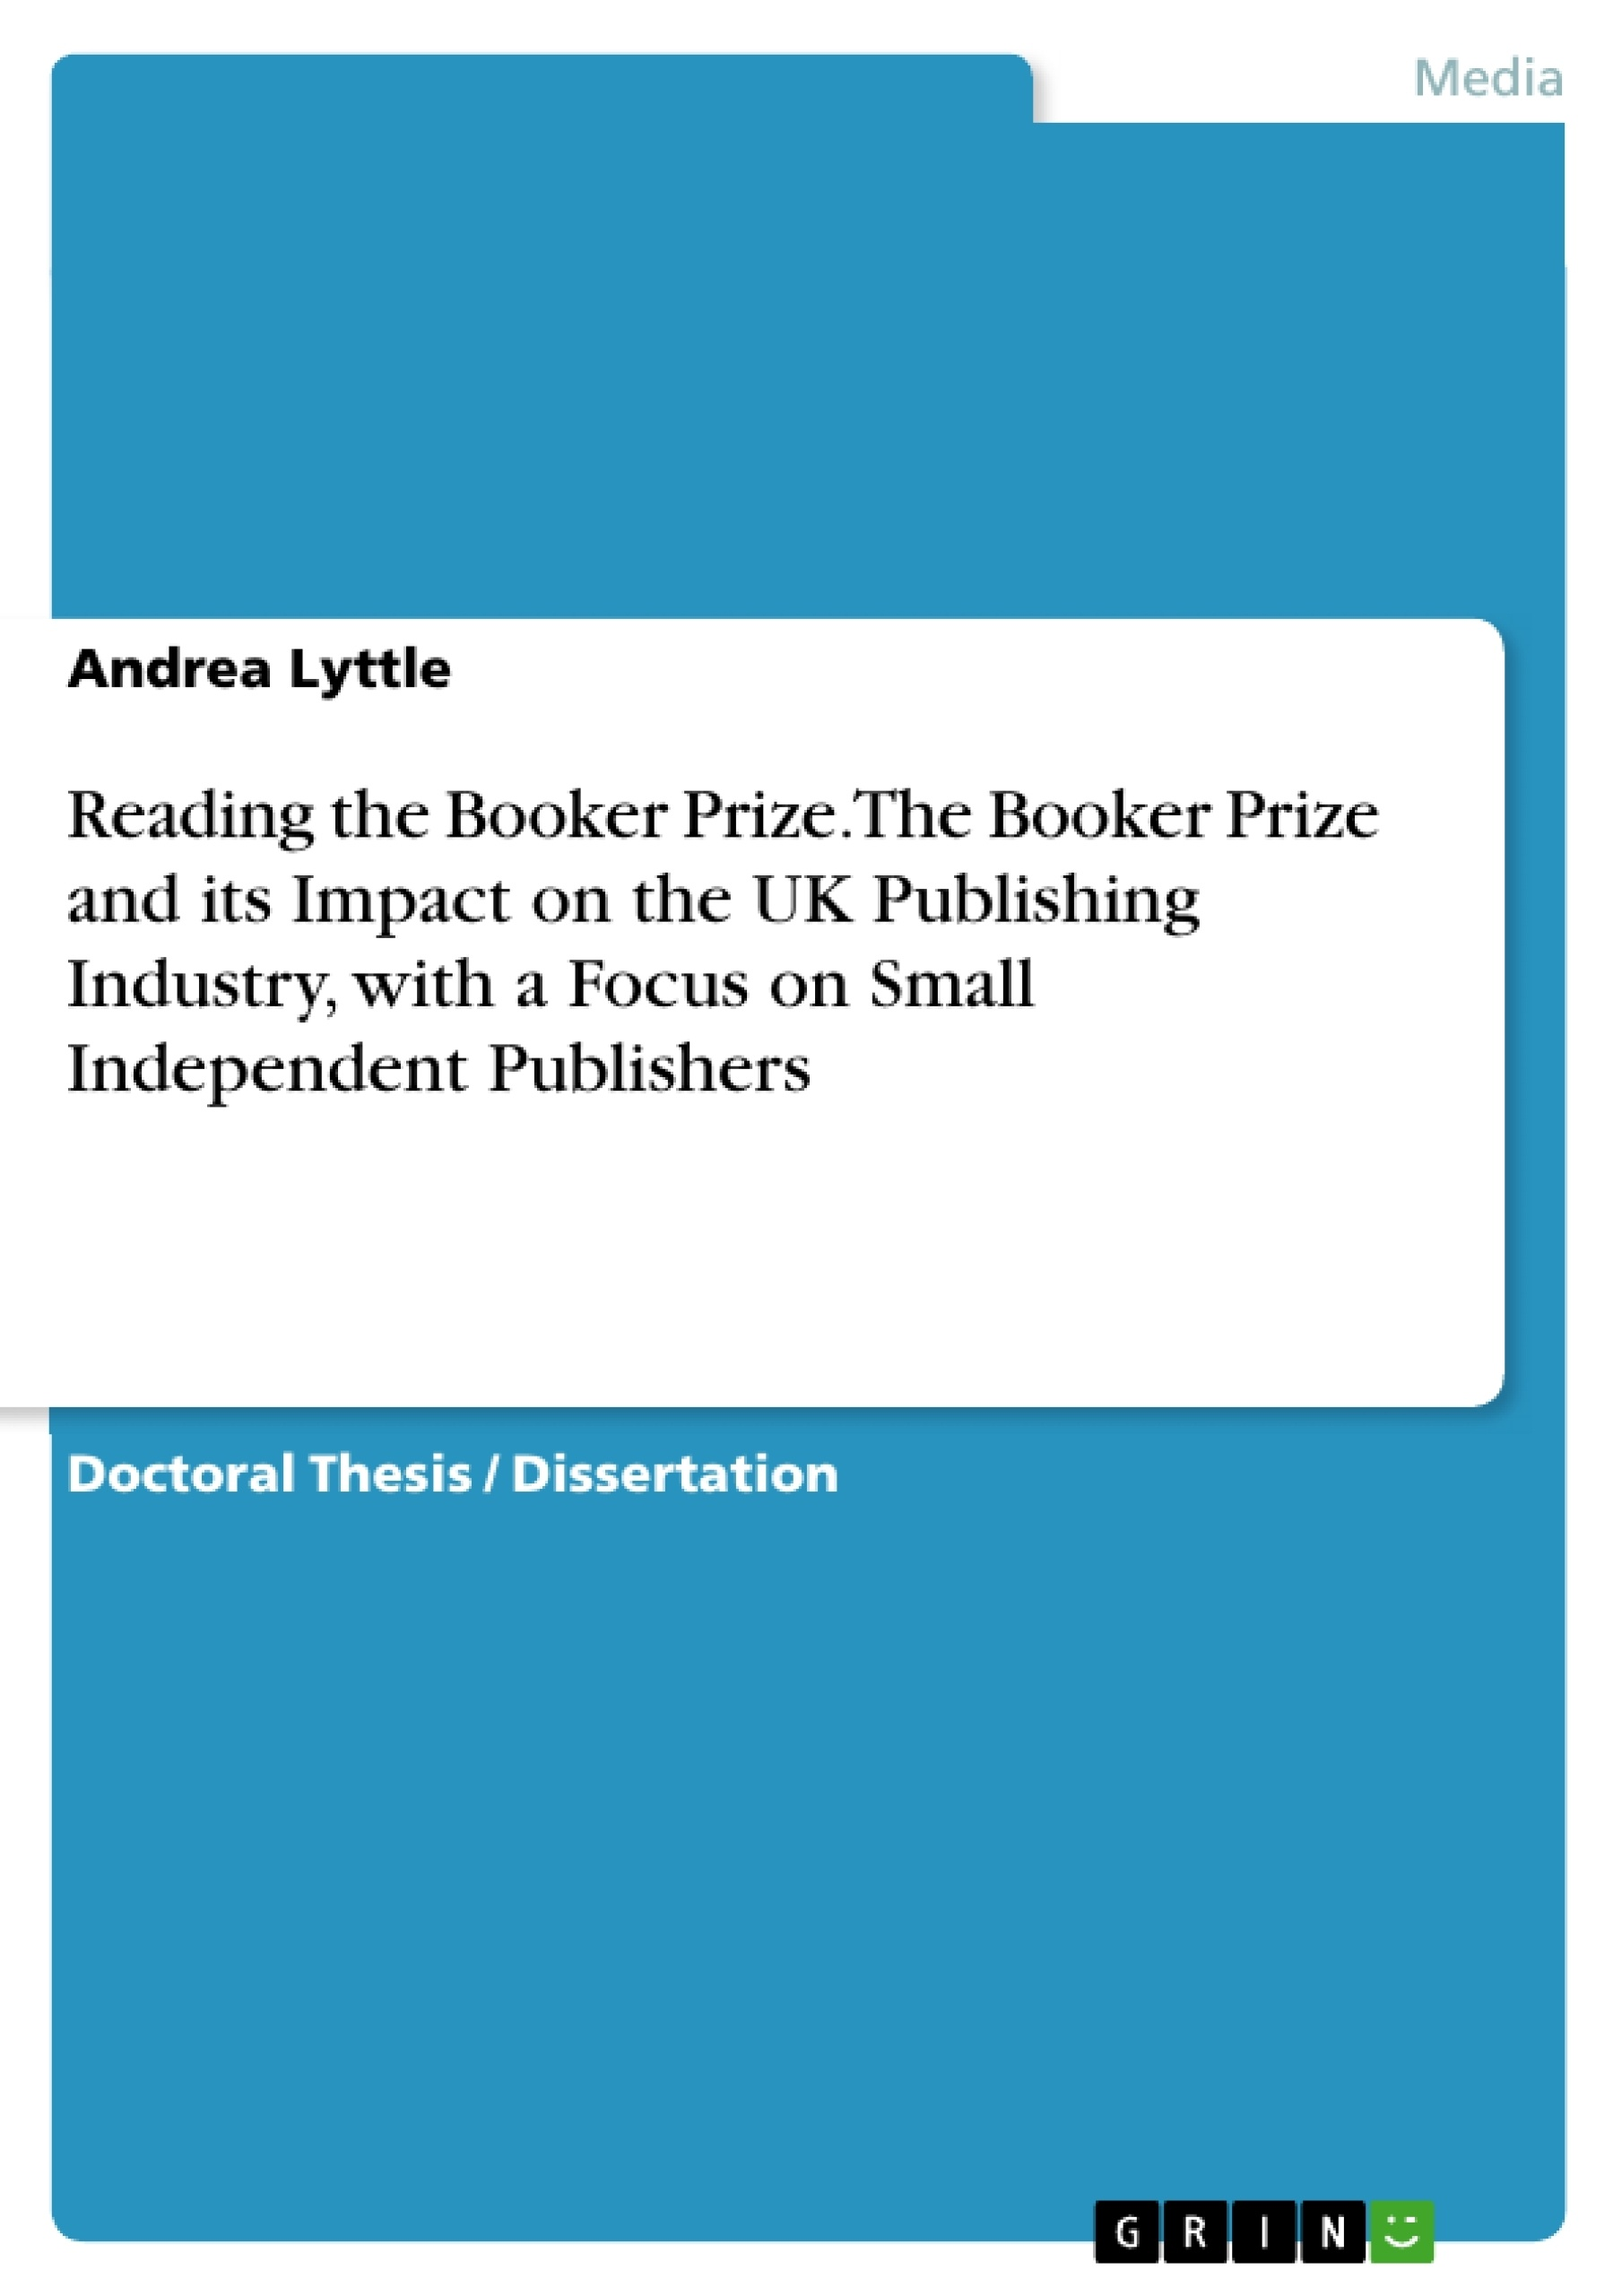 Title: Reading the Booker Prize. The Booker Prize and its Impact on the UK Publishing Industry, with a Focus on Small Independent Publishers